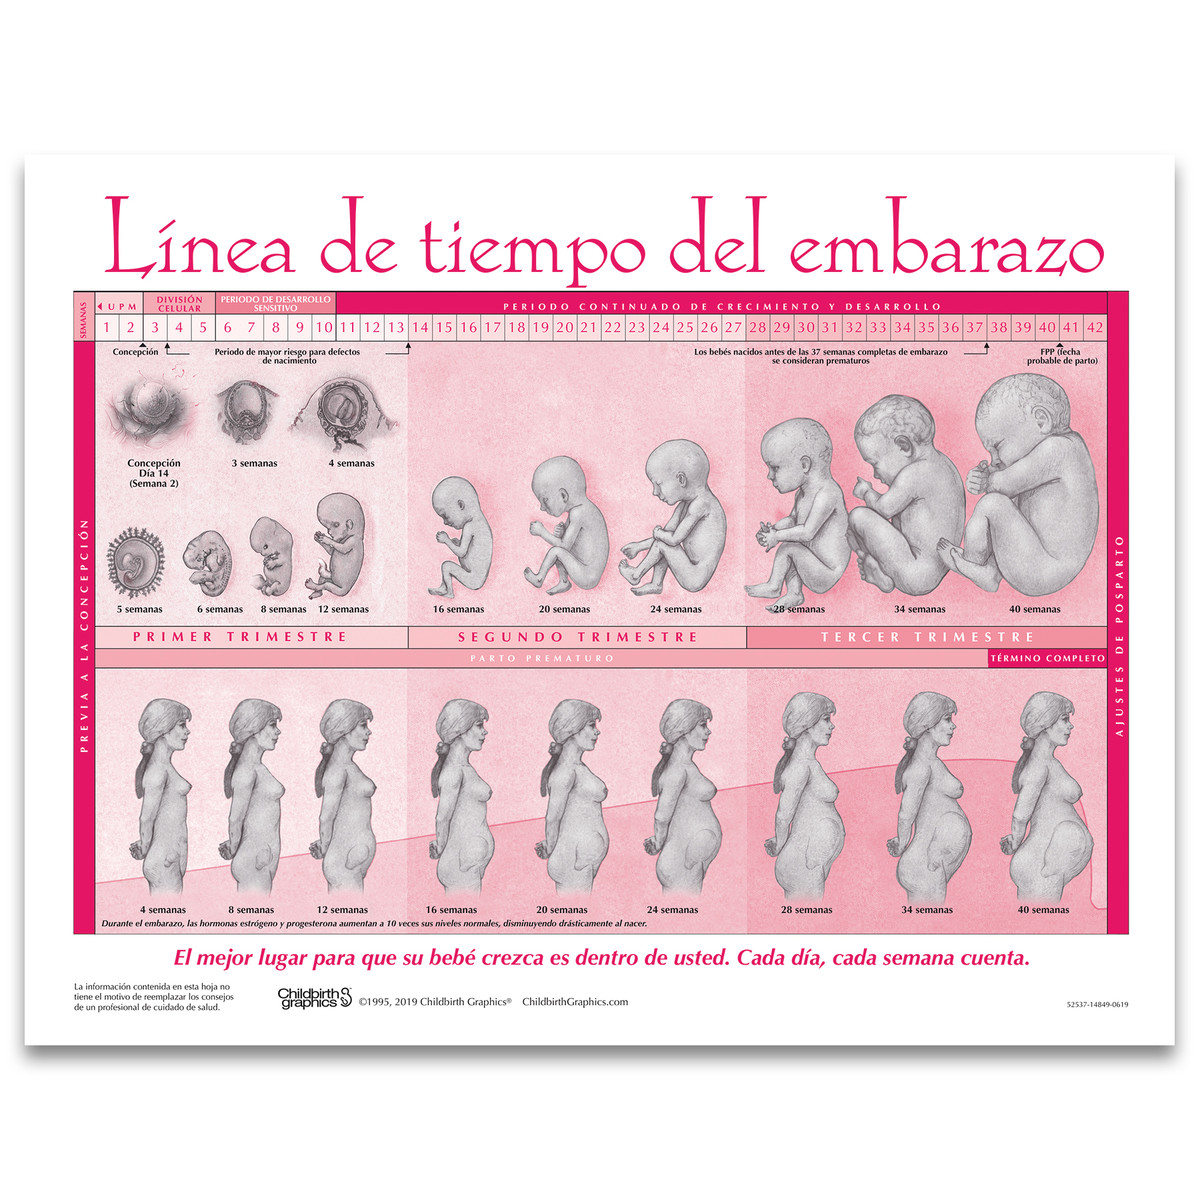 Sets for Each Type of Pregnancy